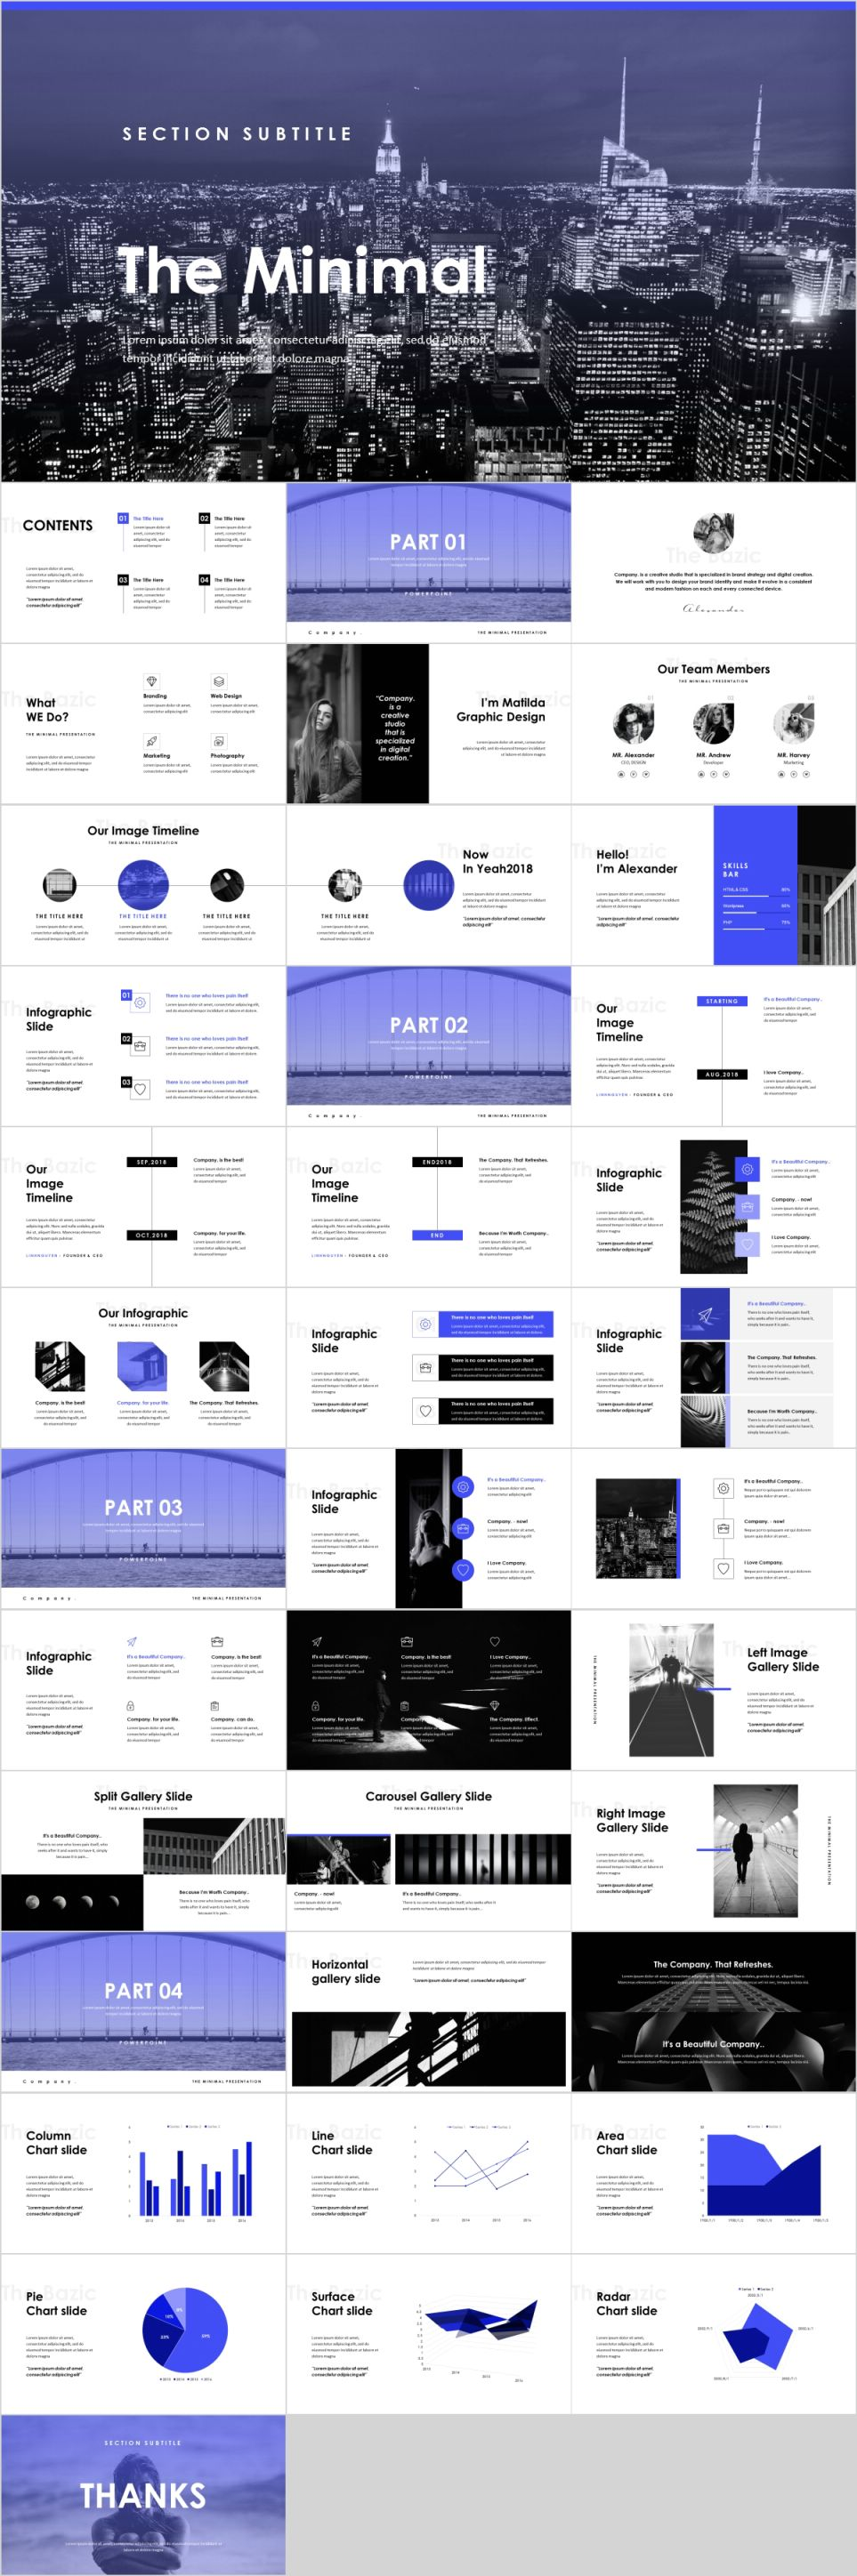 Team Introduction Presentation Templates The Highest Quality Powerpoin In 2020 Creative Powerpoint Templates Presentation Templates Professional Powerpoint Templates